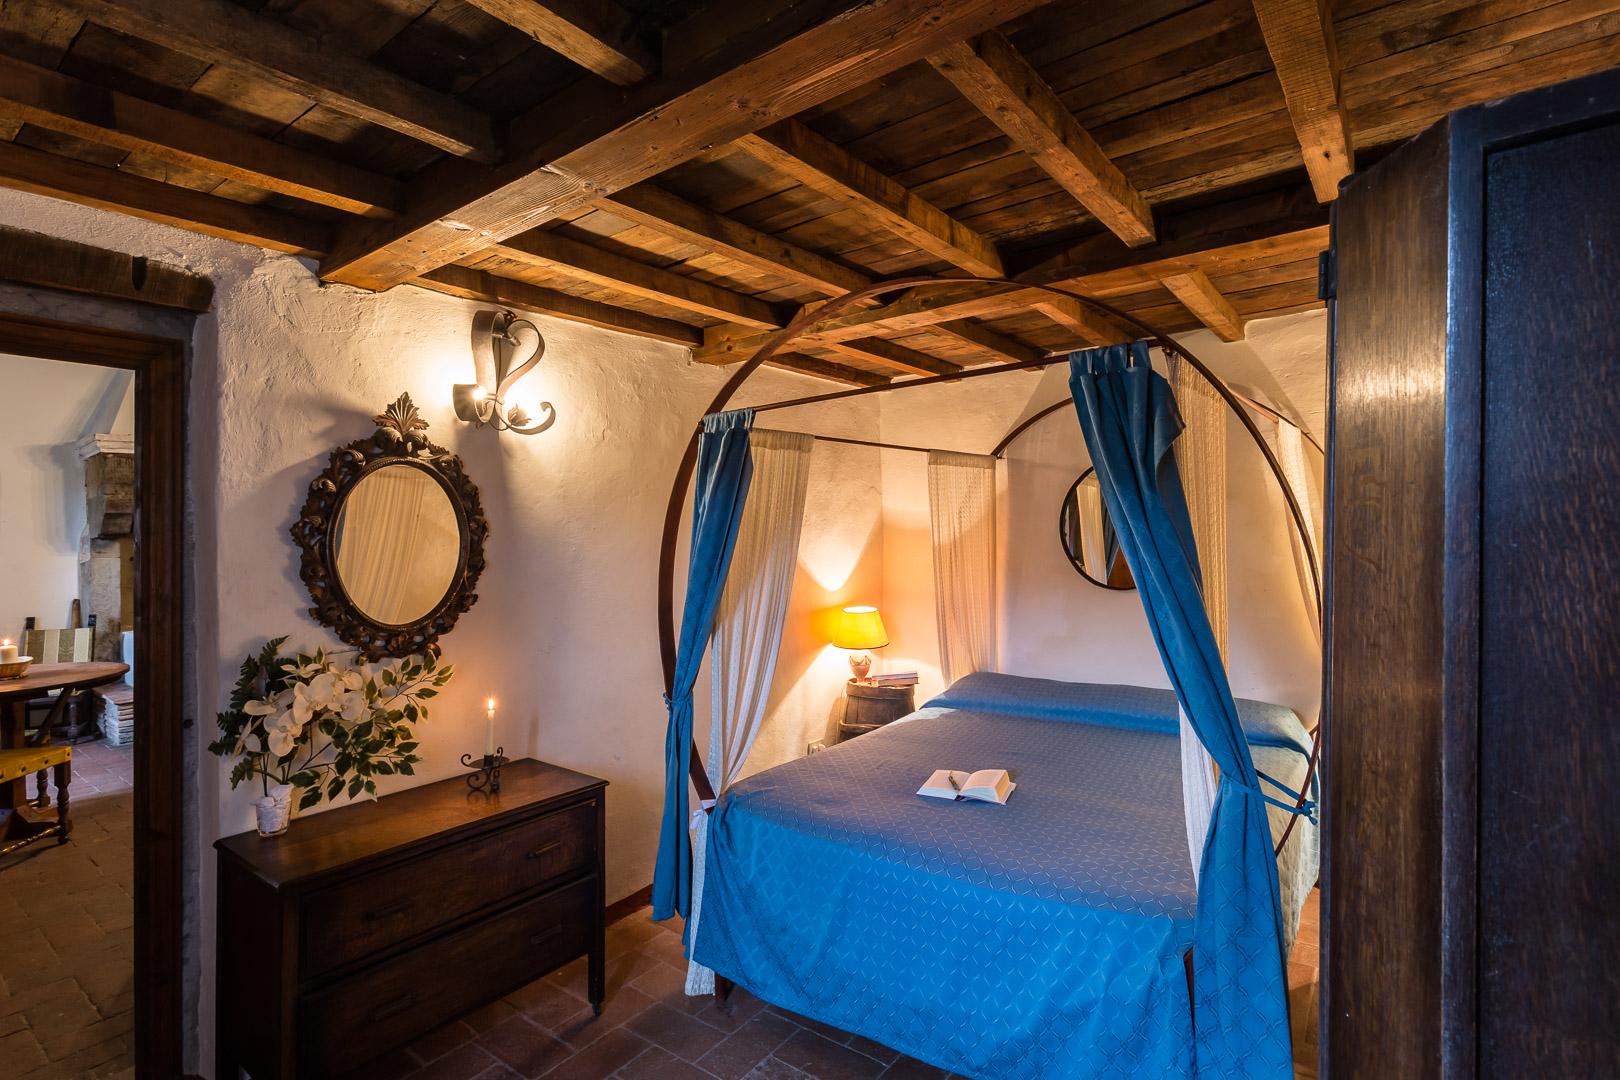 The Castle Apartment - Fit for 2, but spacious enough for up to 4 the Castle Apartment has a queen size bed and 2 single beds, a closet, wooden table and chairs, this Castle Apartment also features a Kitchenette for making pasta & coffee as well as a bathroom.